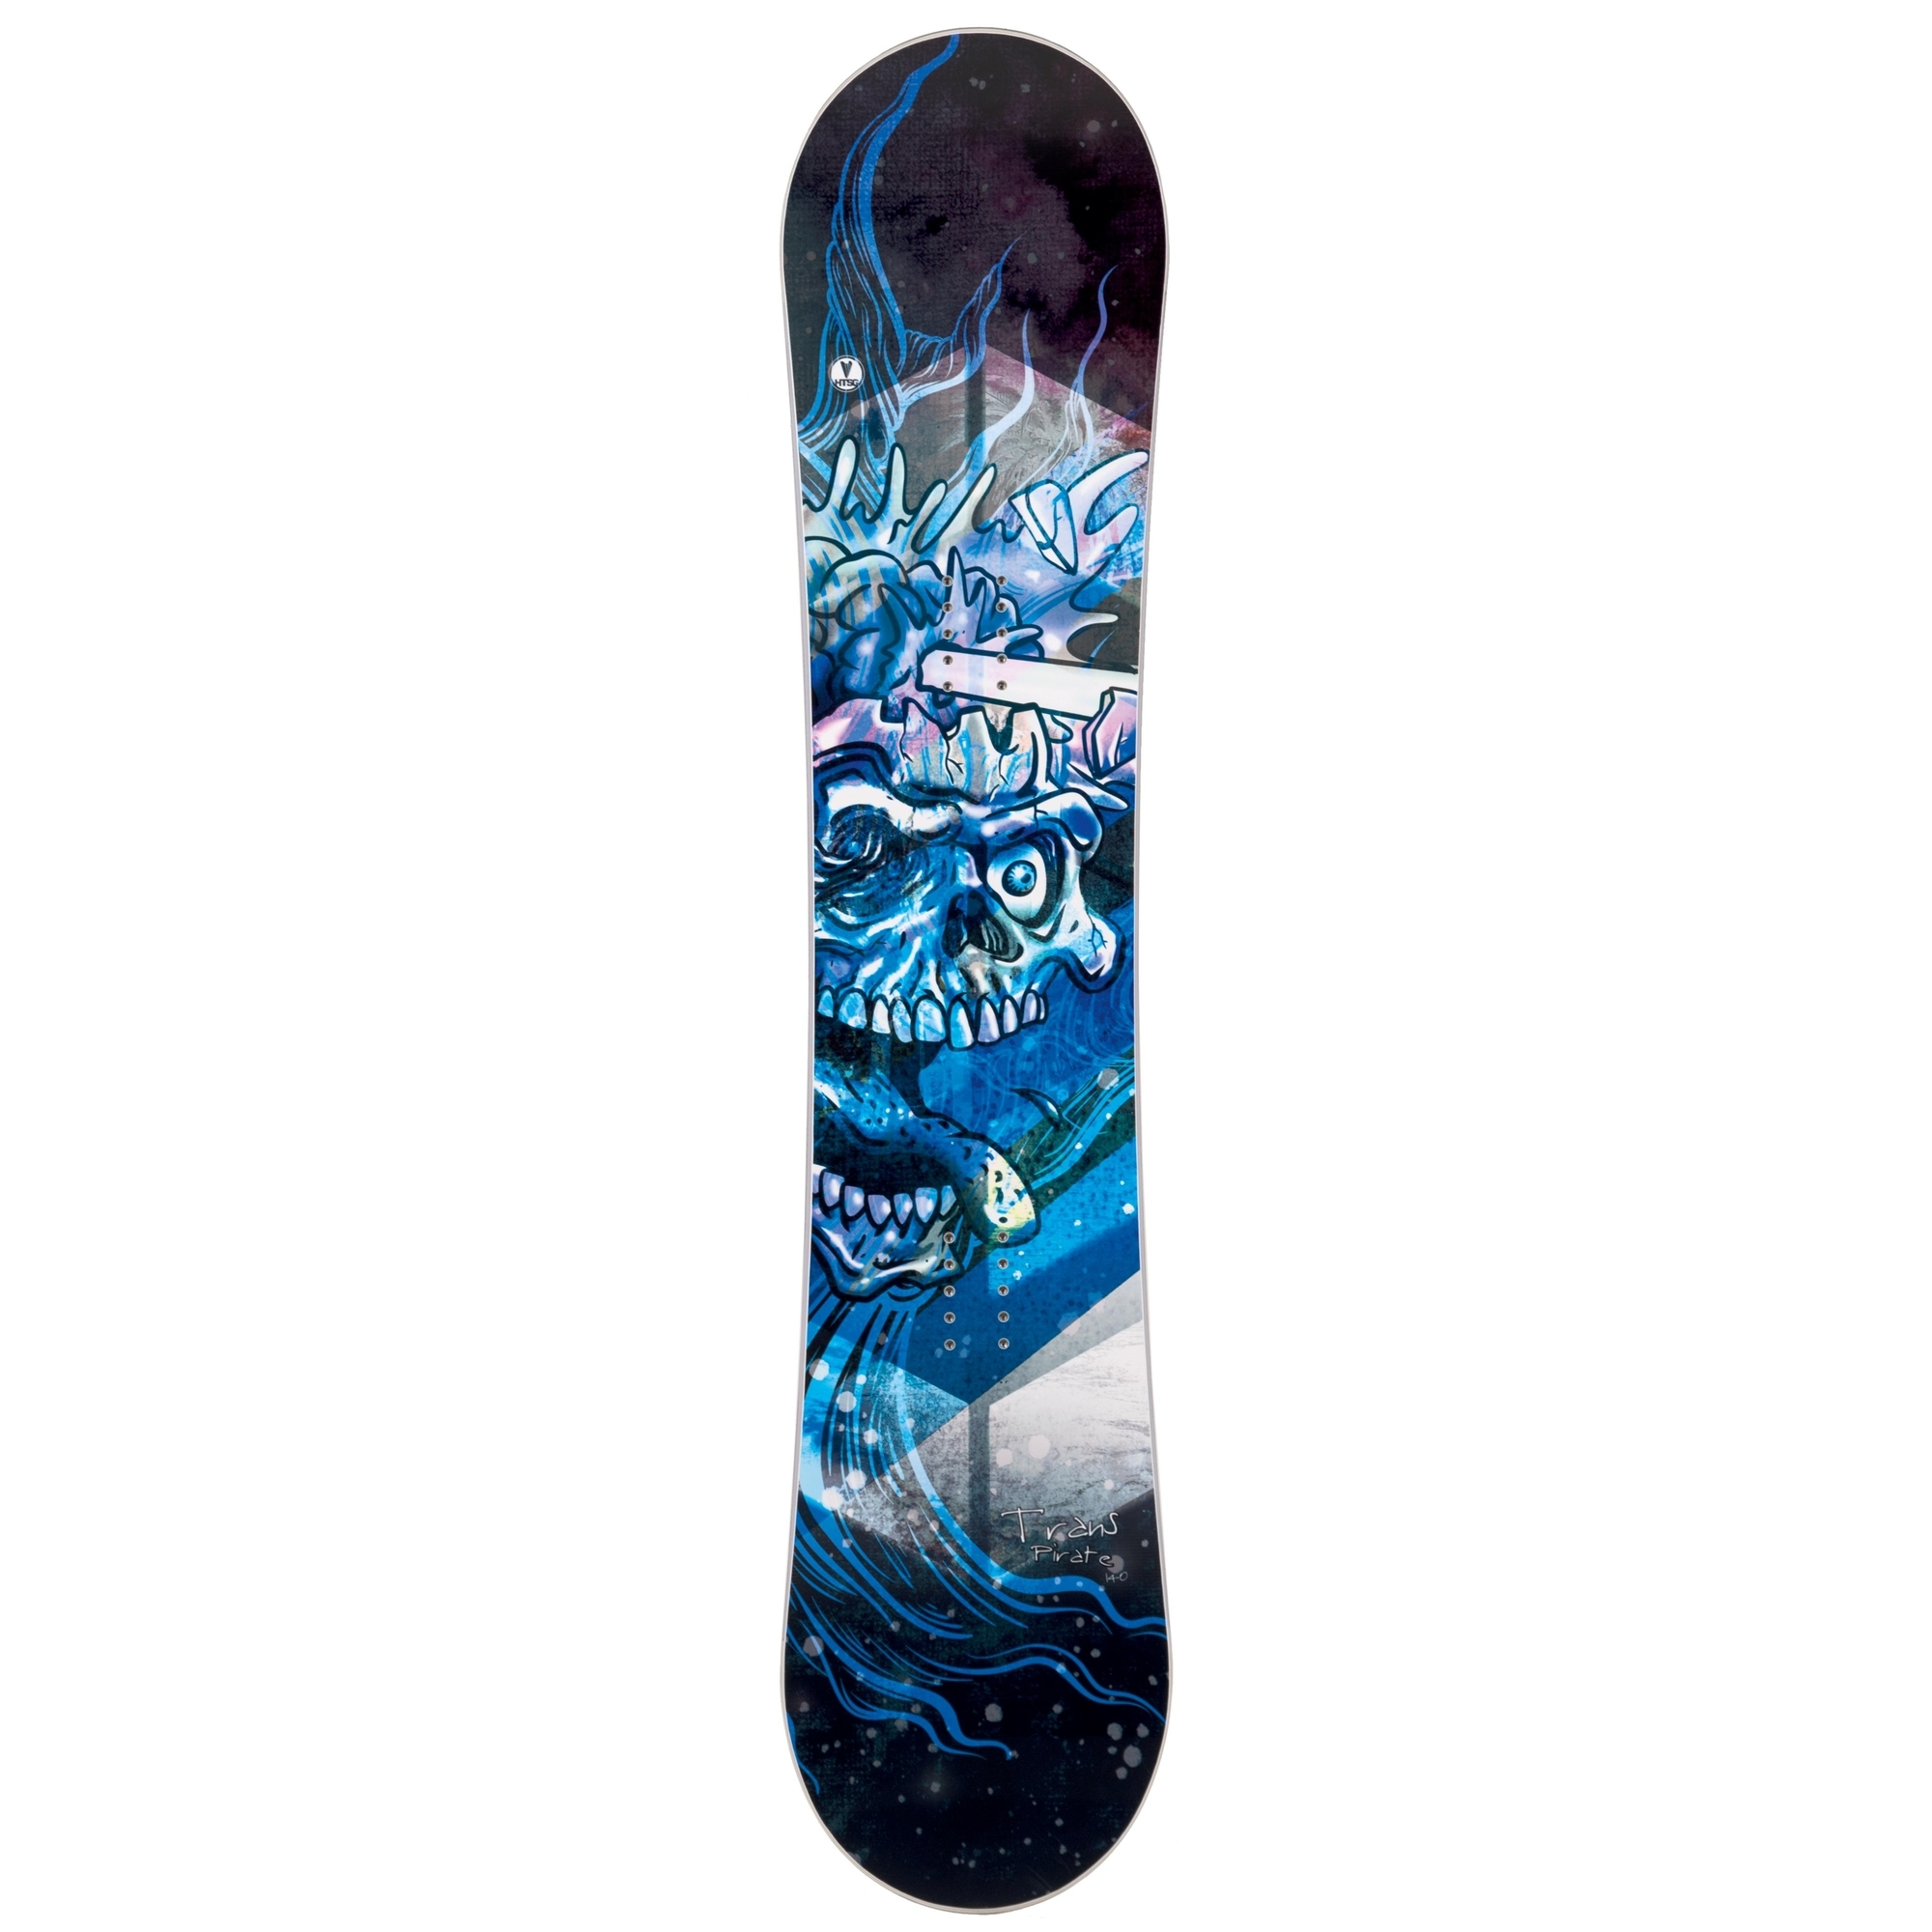 Placa snowboard copii Trans Pirate JR Fullrocker Albastru 2019 imagine